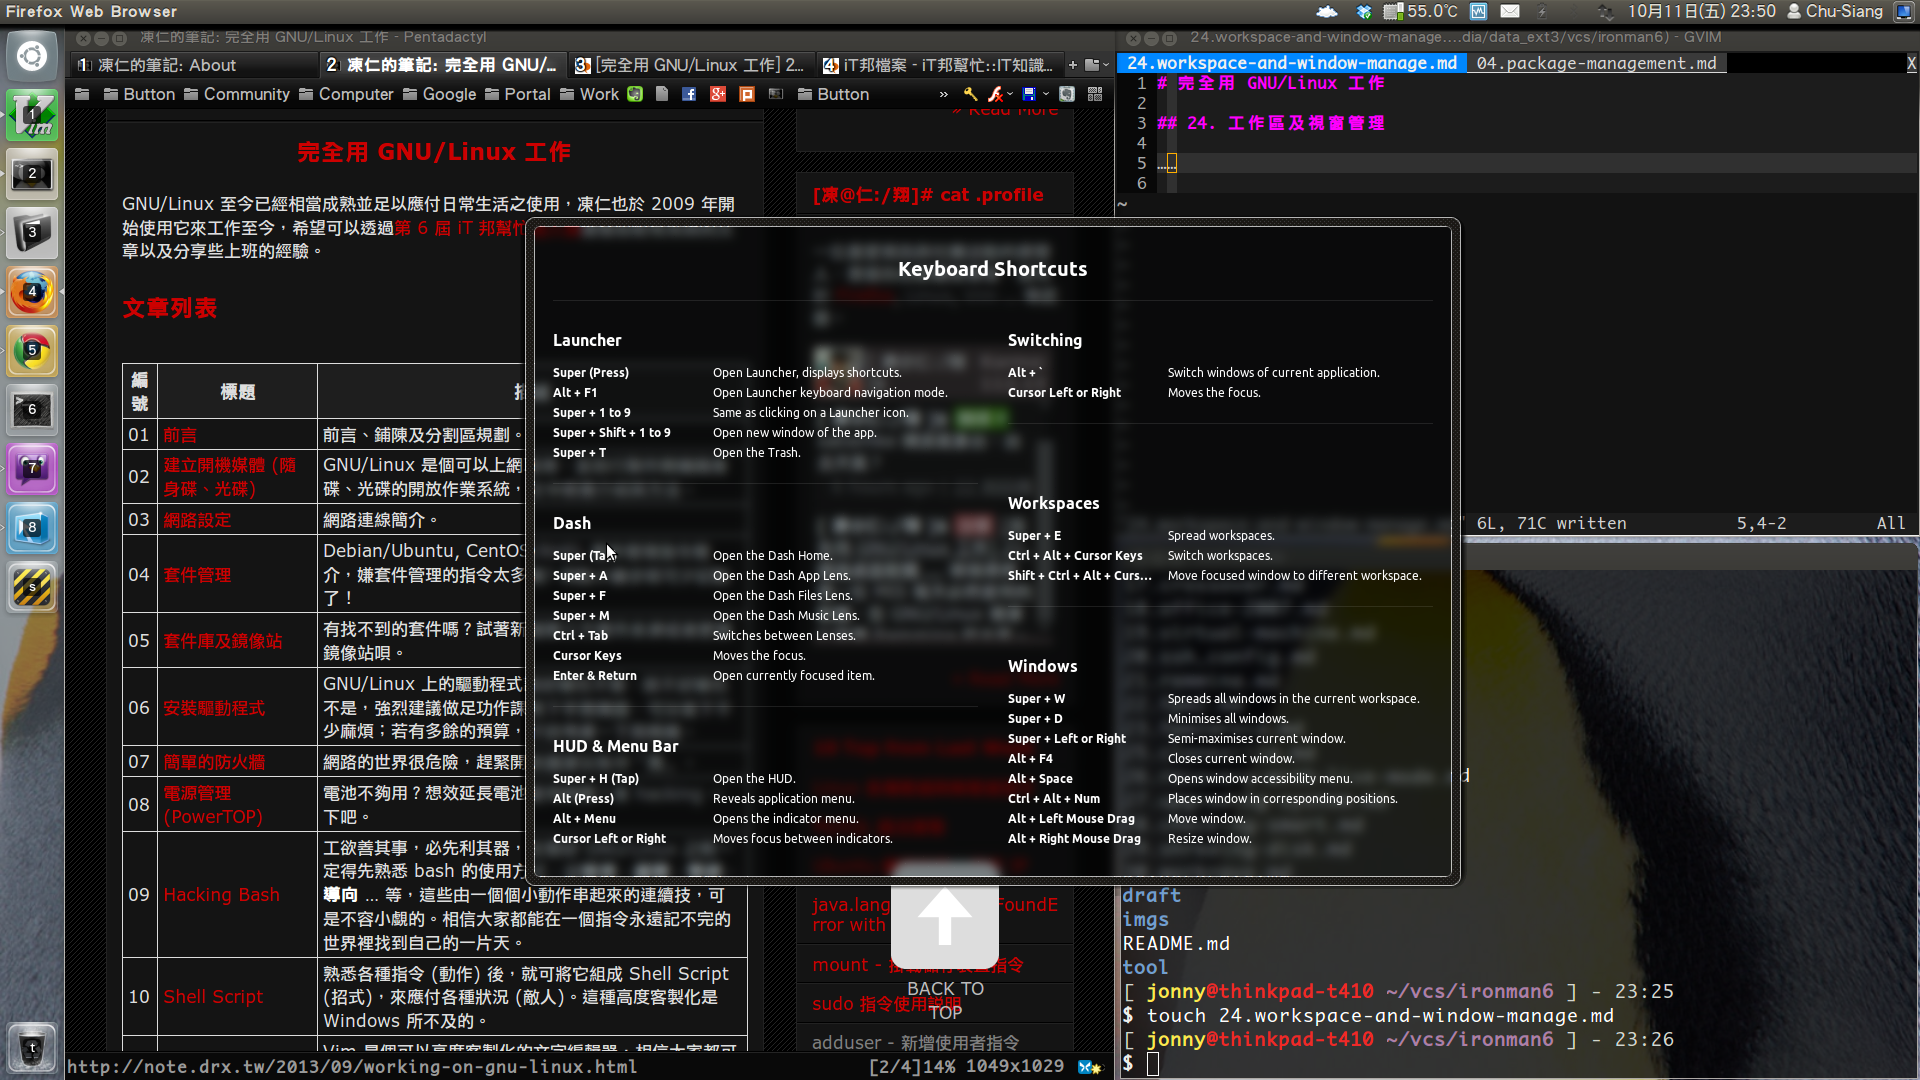 2013-10-11-workspace-and-window-manage-06.png